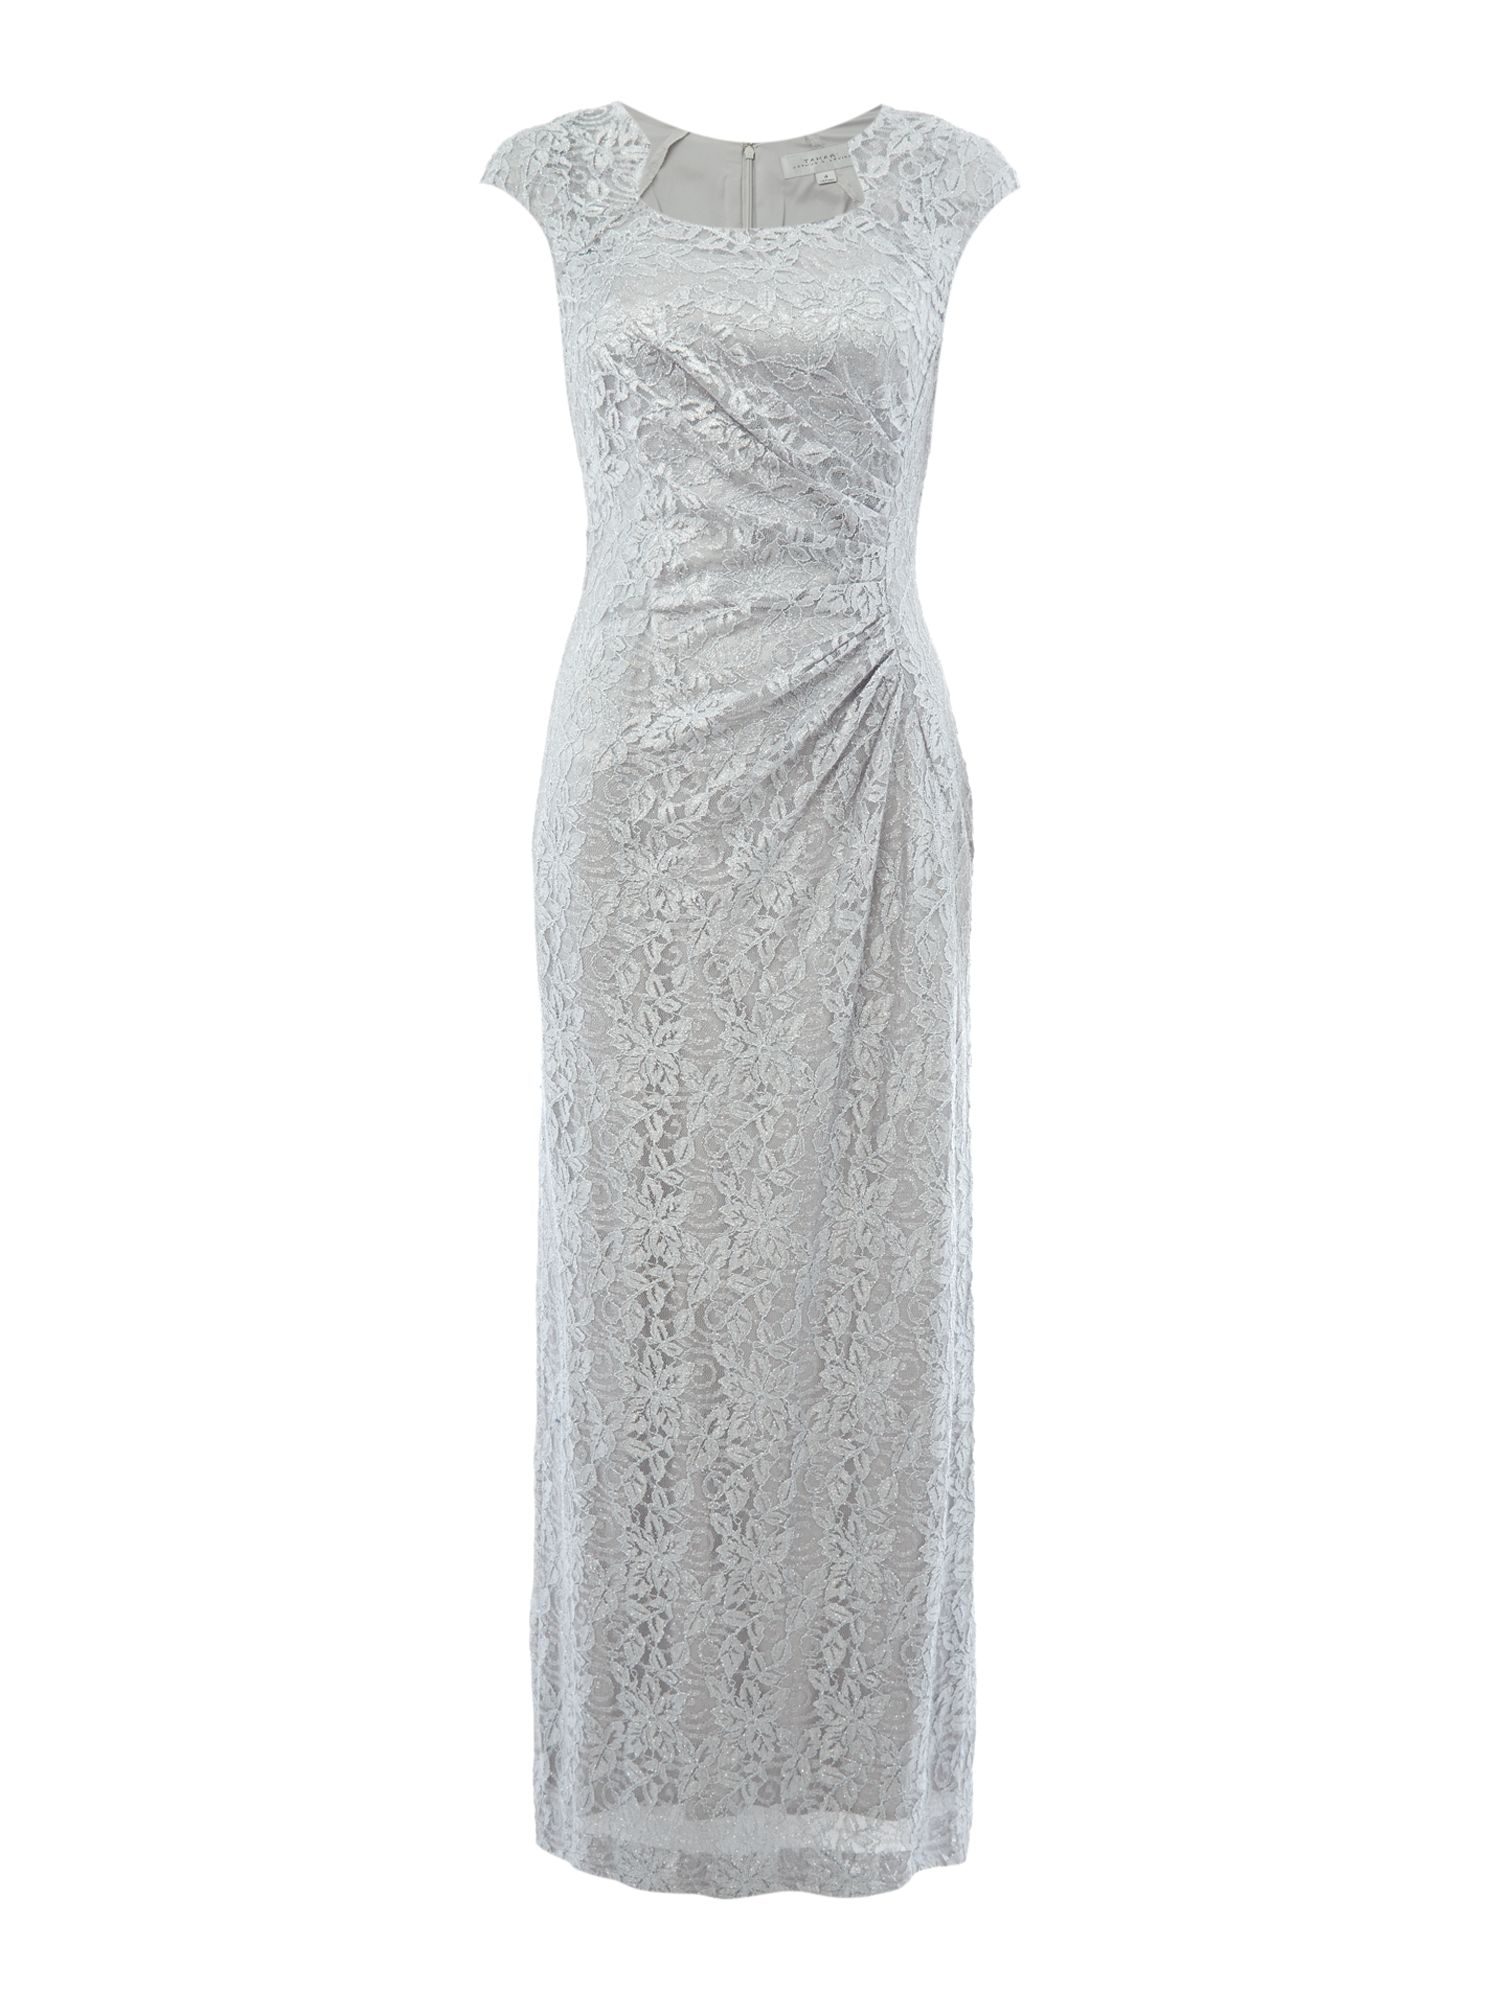 Tahari ASL Sequin Lace Cap Sleeve Gown, Silver Silverlic